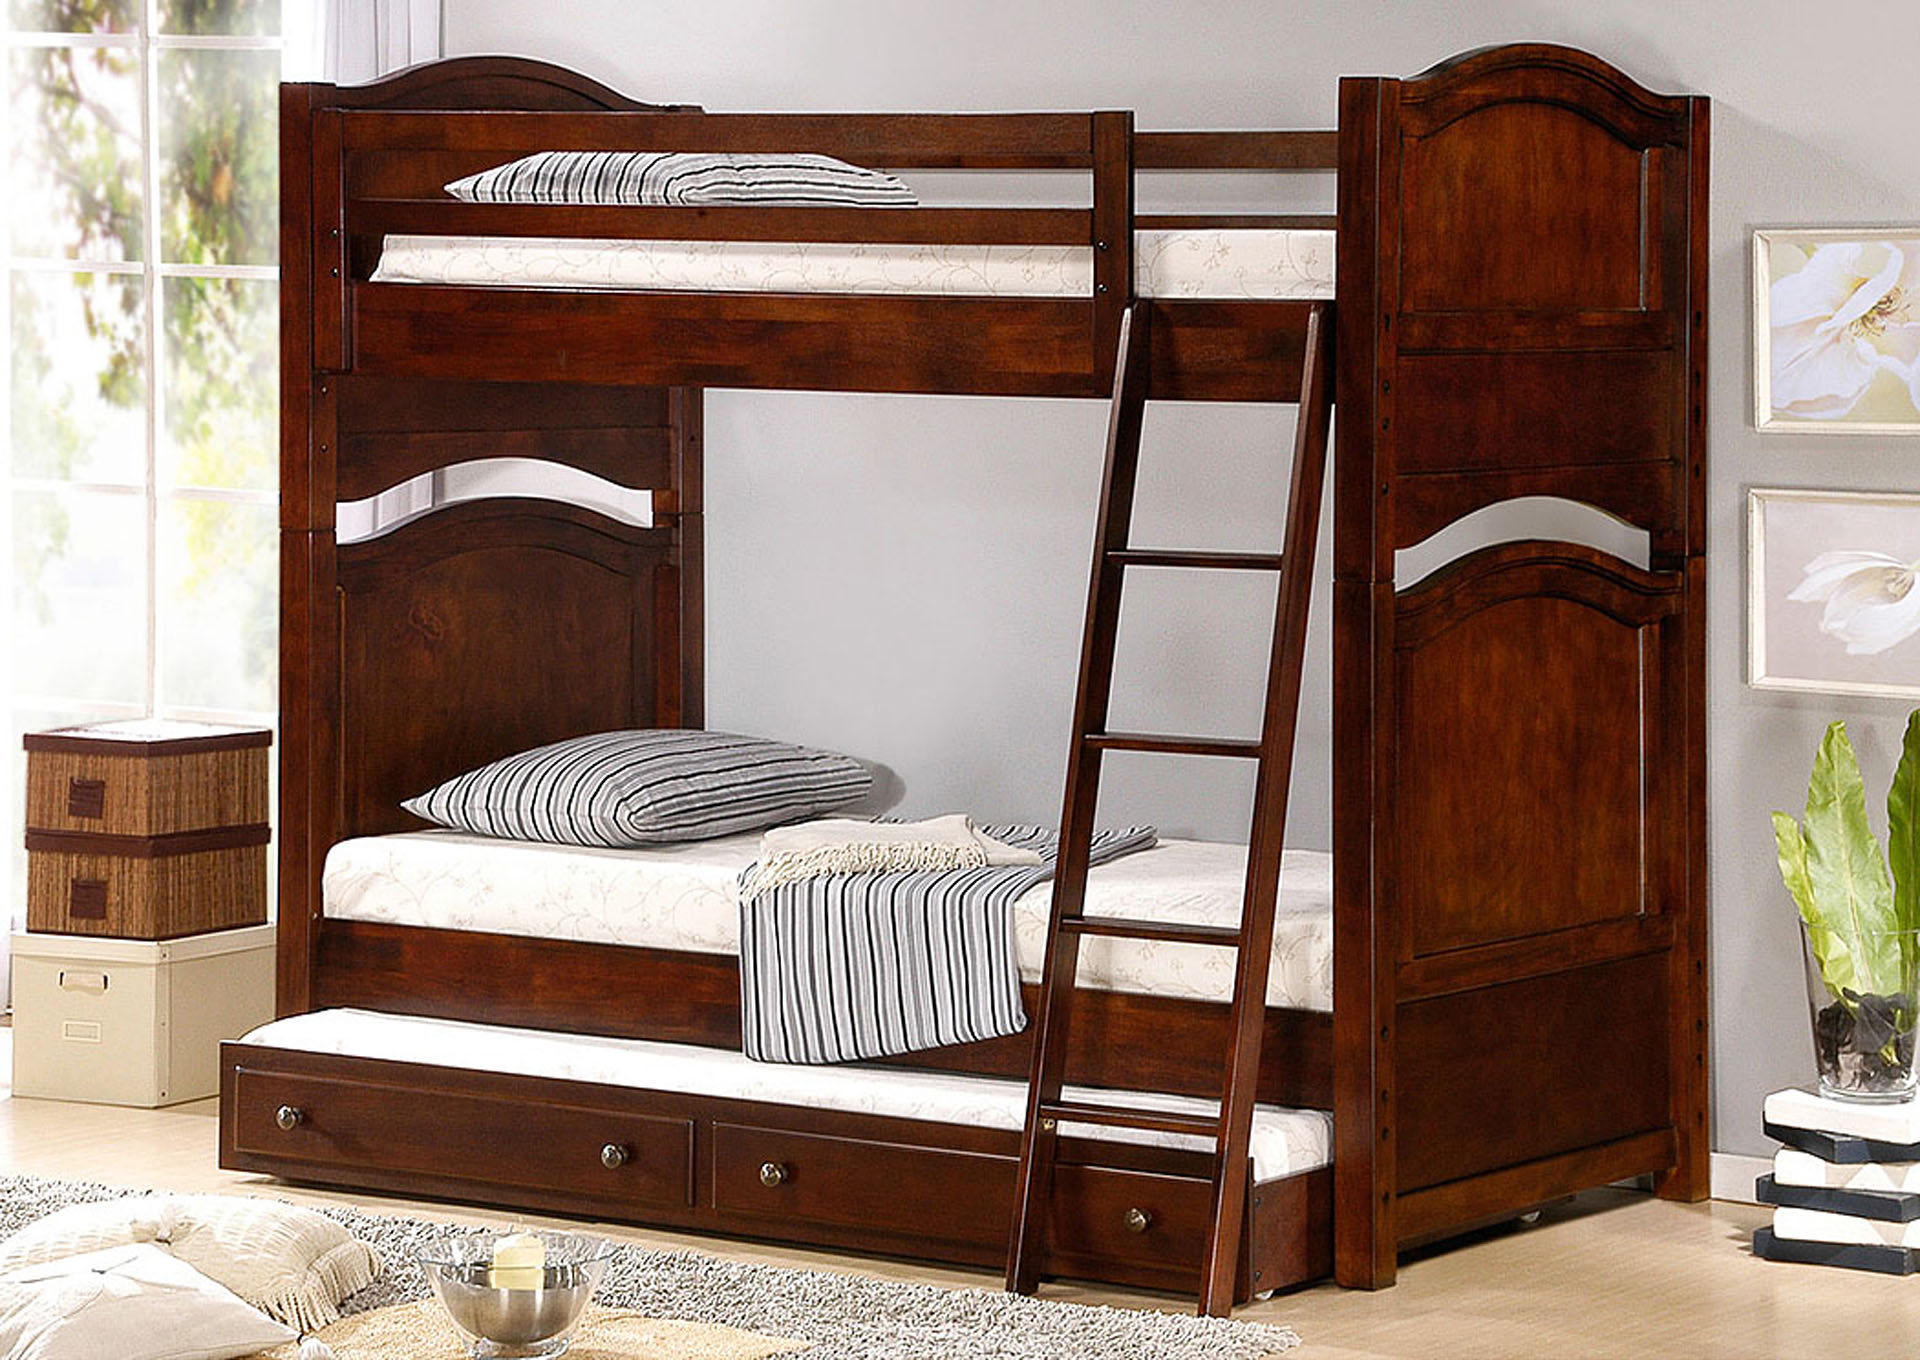 Twin Trundle For Bunk Bed,Homelegance